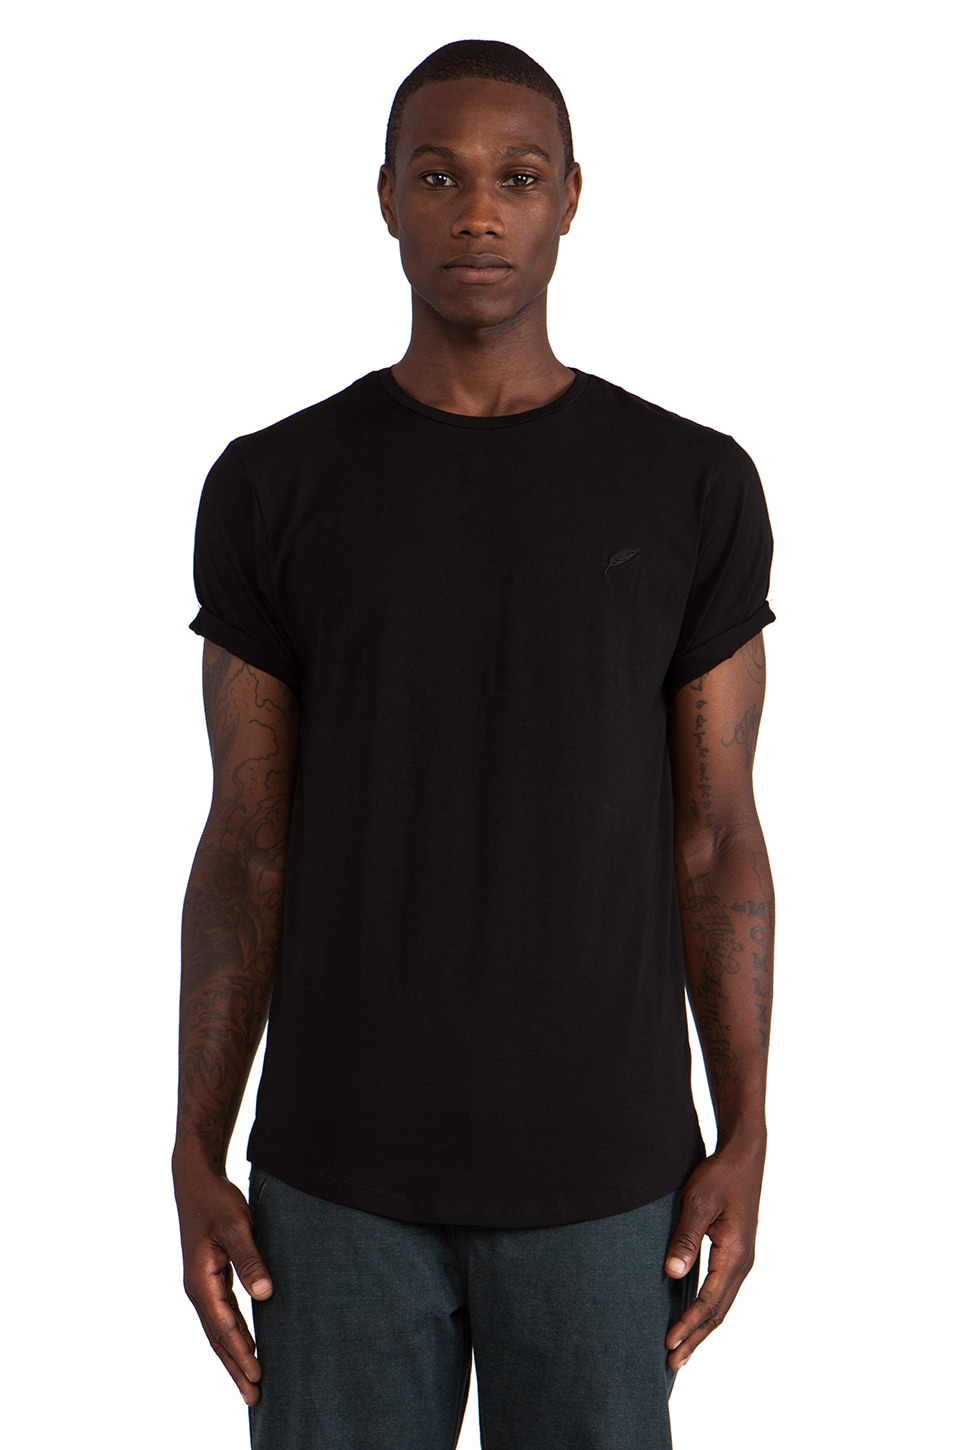 Publish Burne S/S Tee in Black